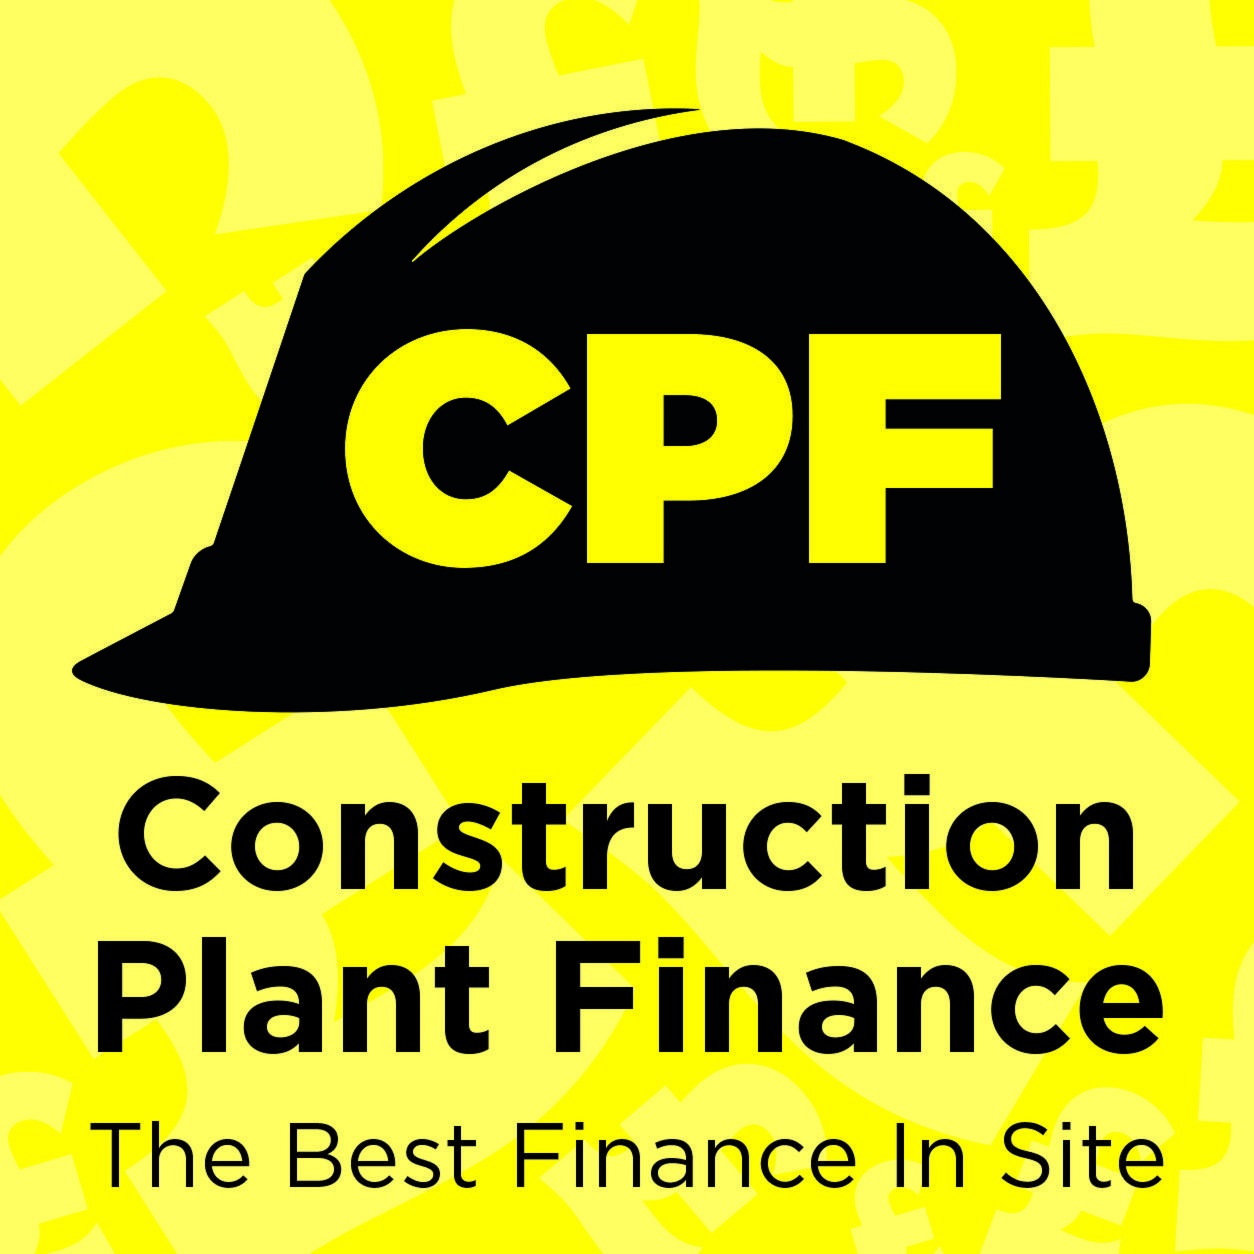 Construction Plant Finance Ltd